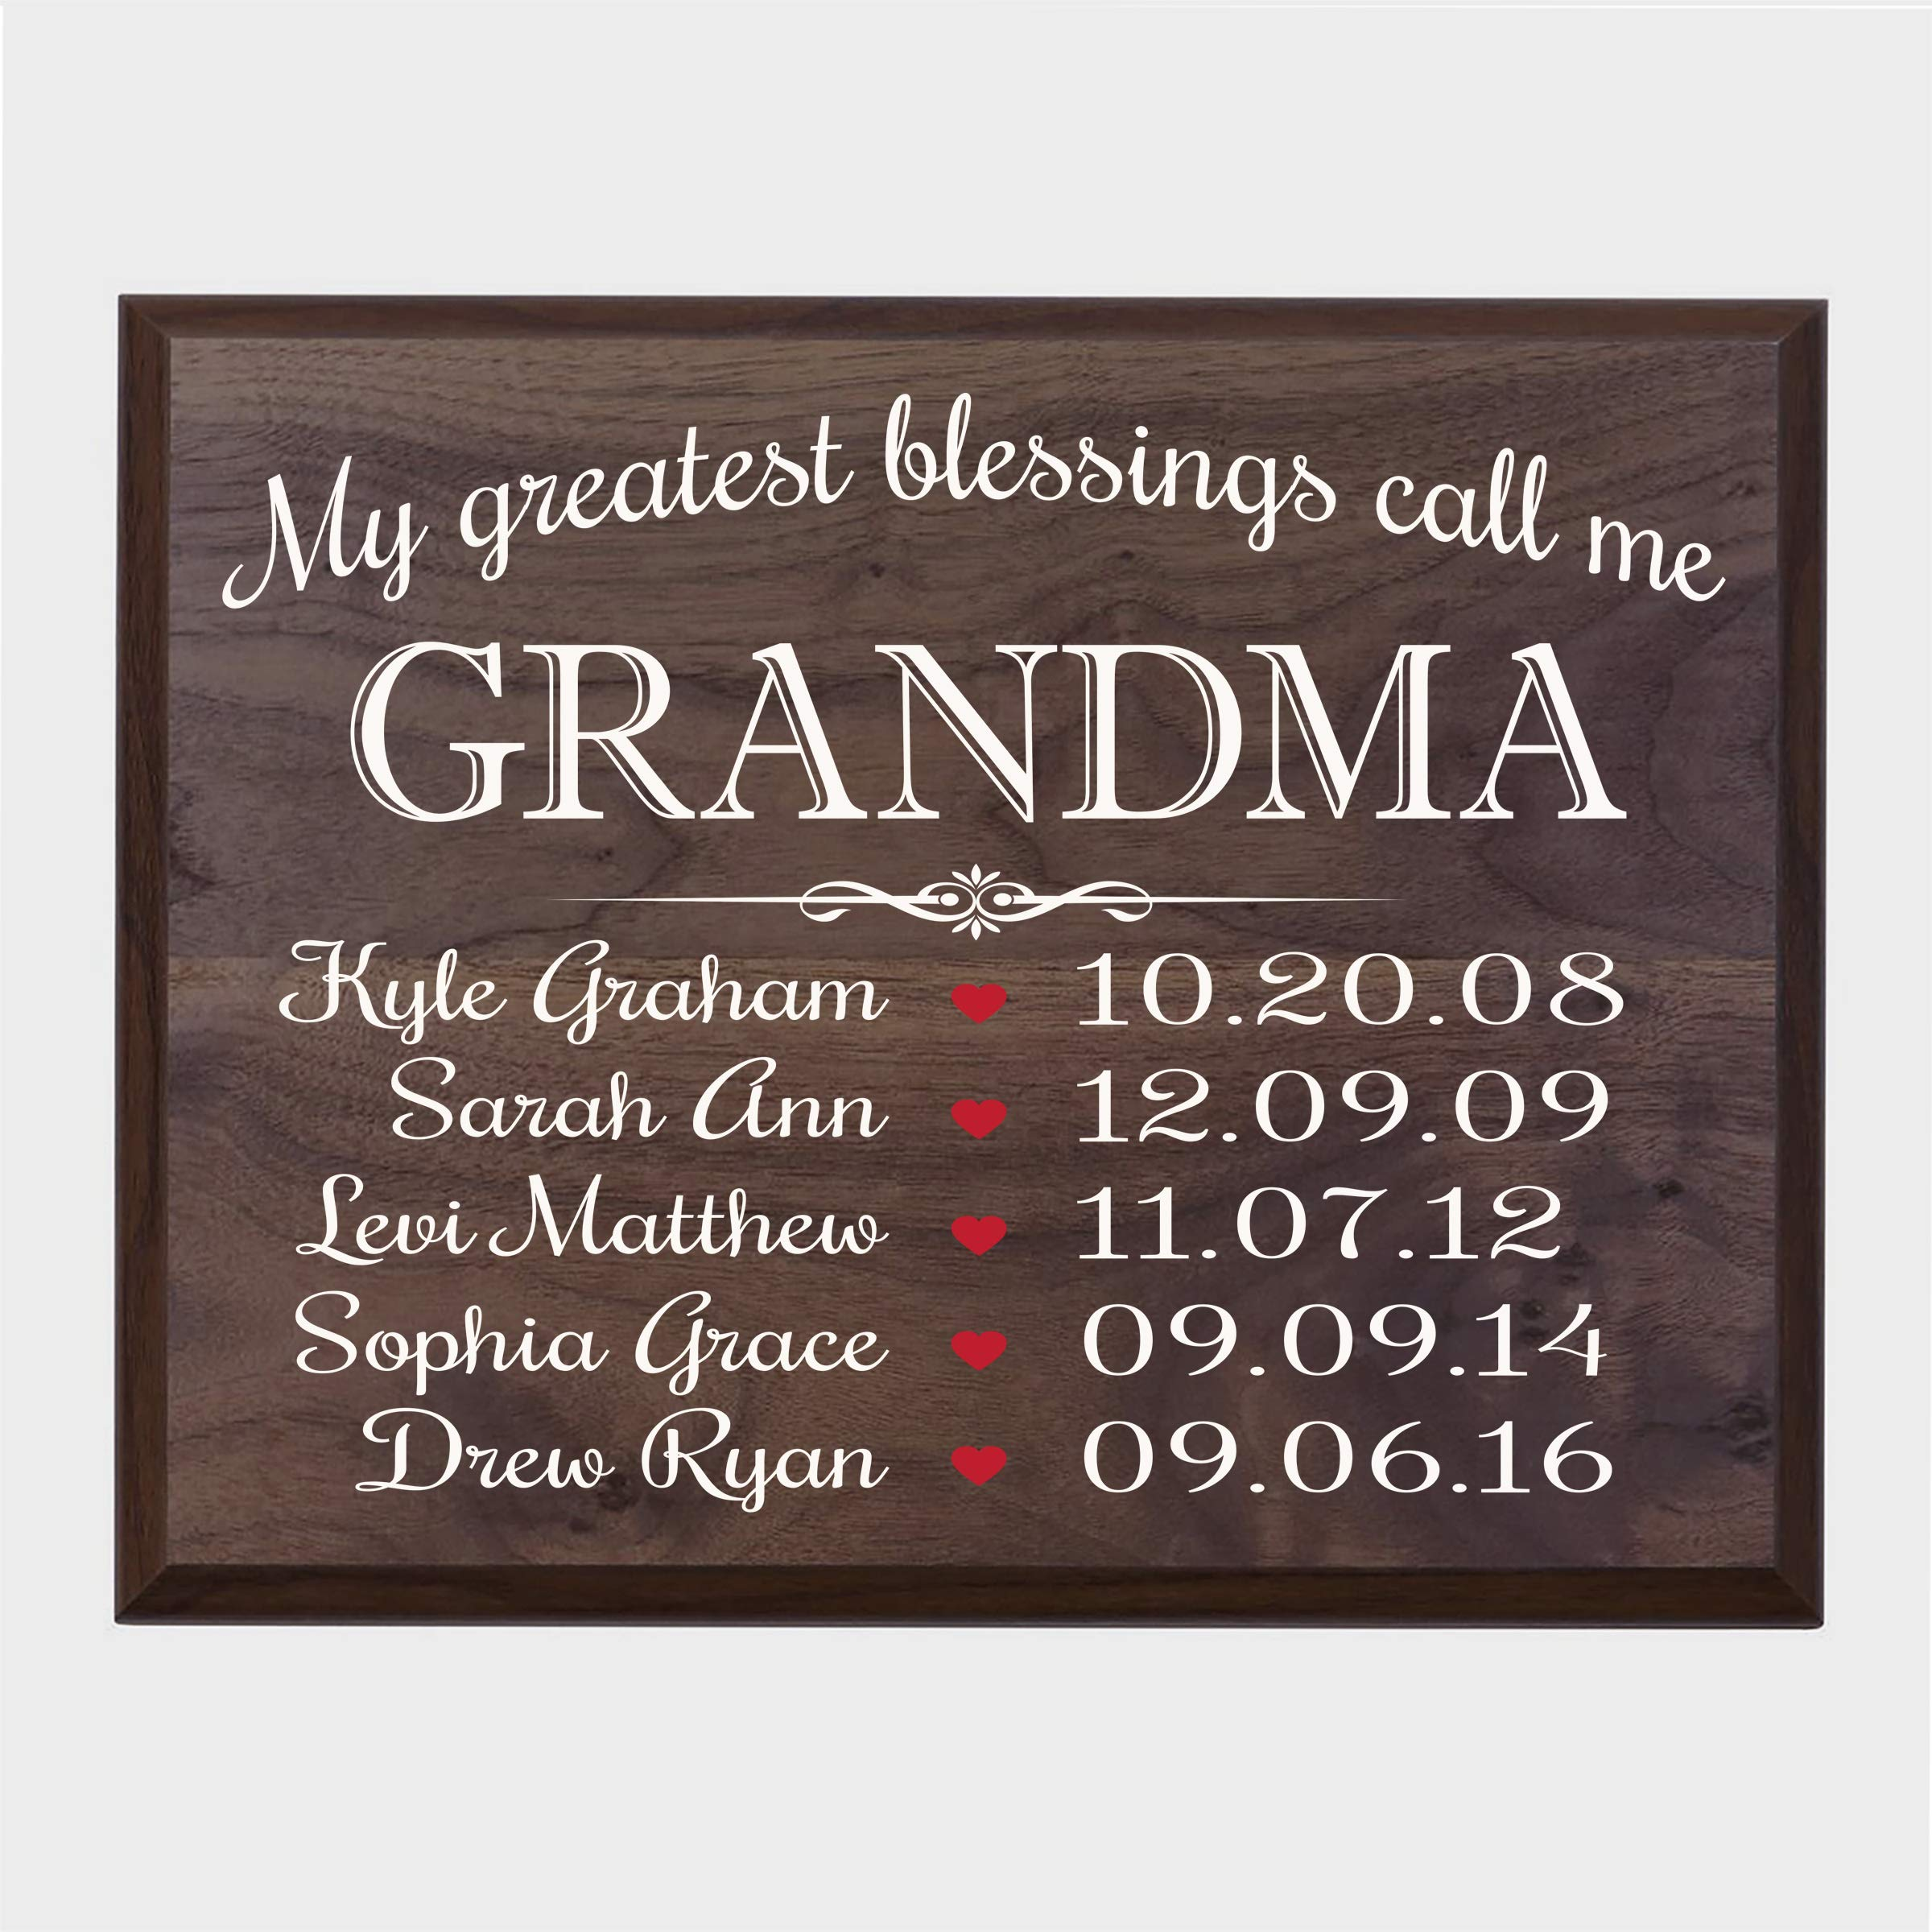 LifeSong Milestones Personalized Gifts for Grandma Wall Plaque Sign with Children's Names Birth Dates to Remember My Greatest Blessings Call me Grandma (Walnut) by LifeSong Milestones (Image #1)